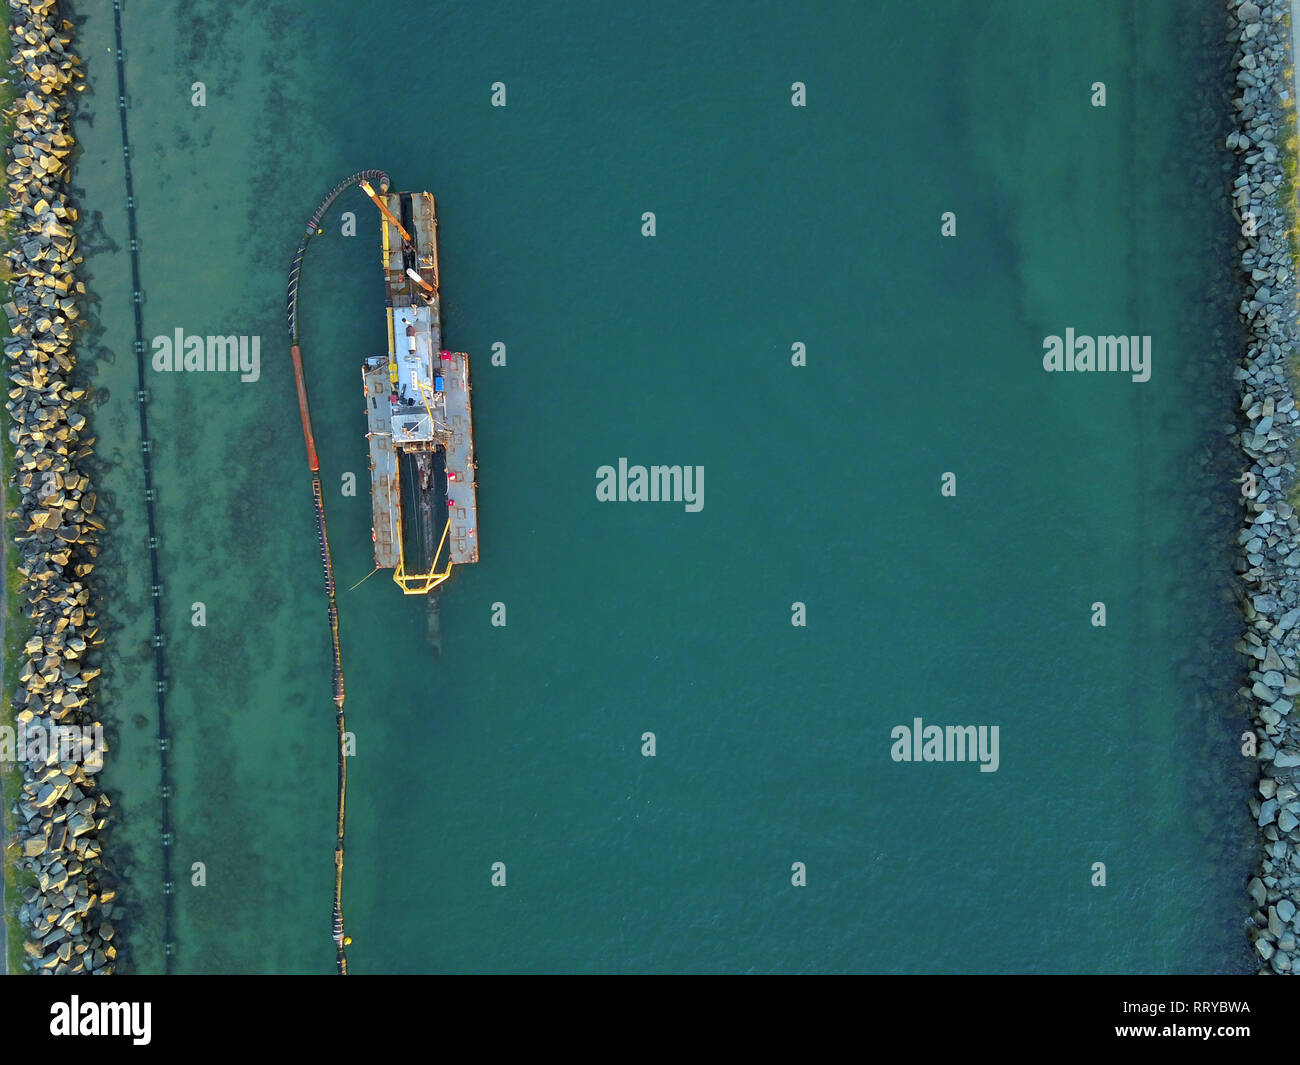 Dredging activity at sea canal from above in Queensland, Australia. The dredging aerial photography captures a bird's eye view of the engineering. - Stock Image